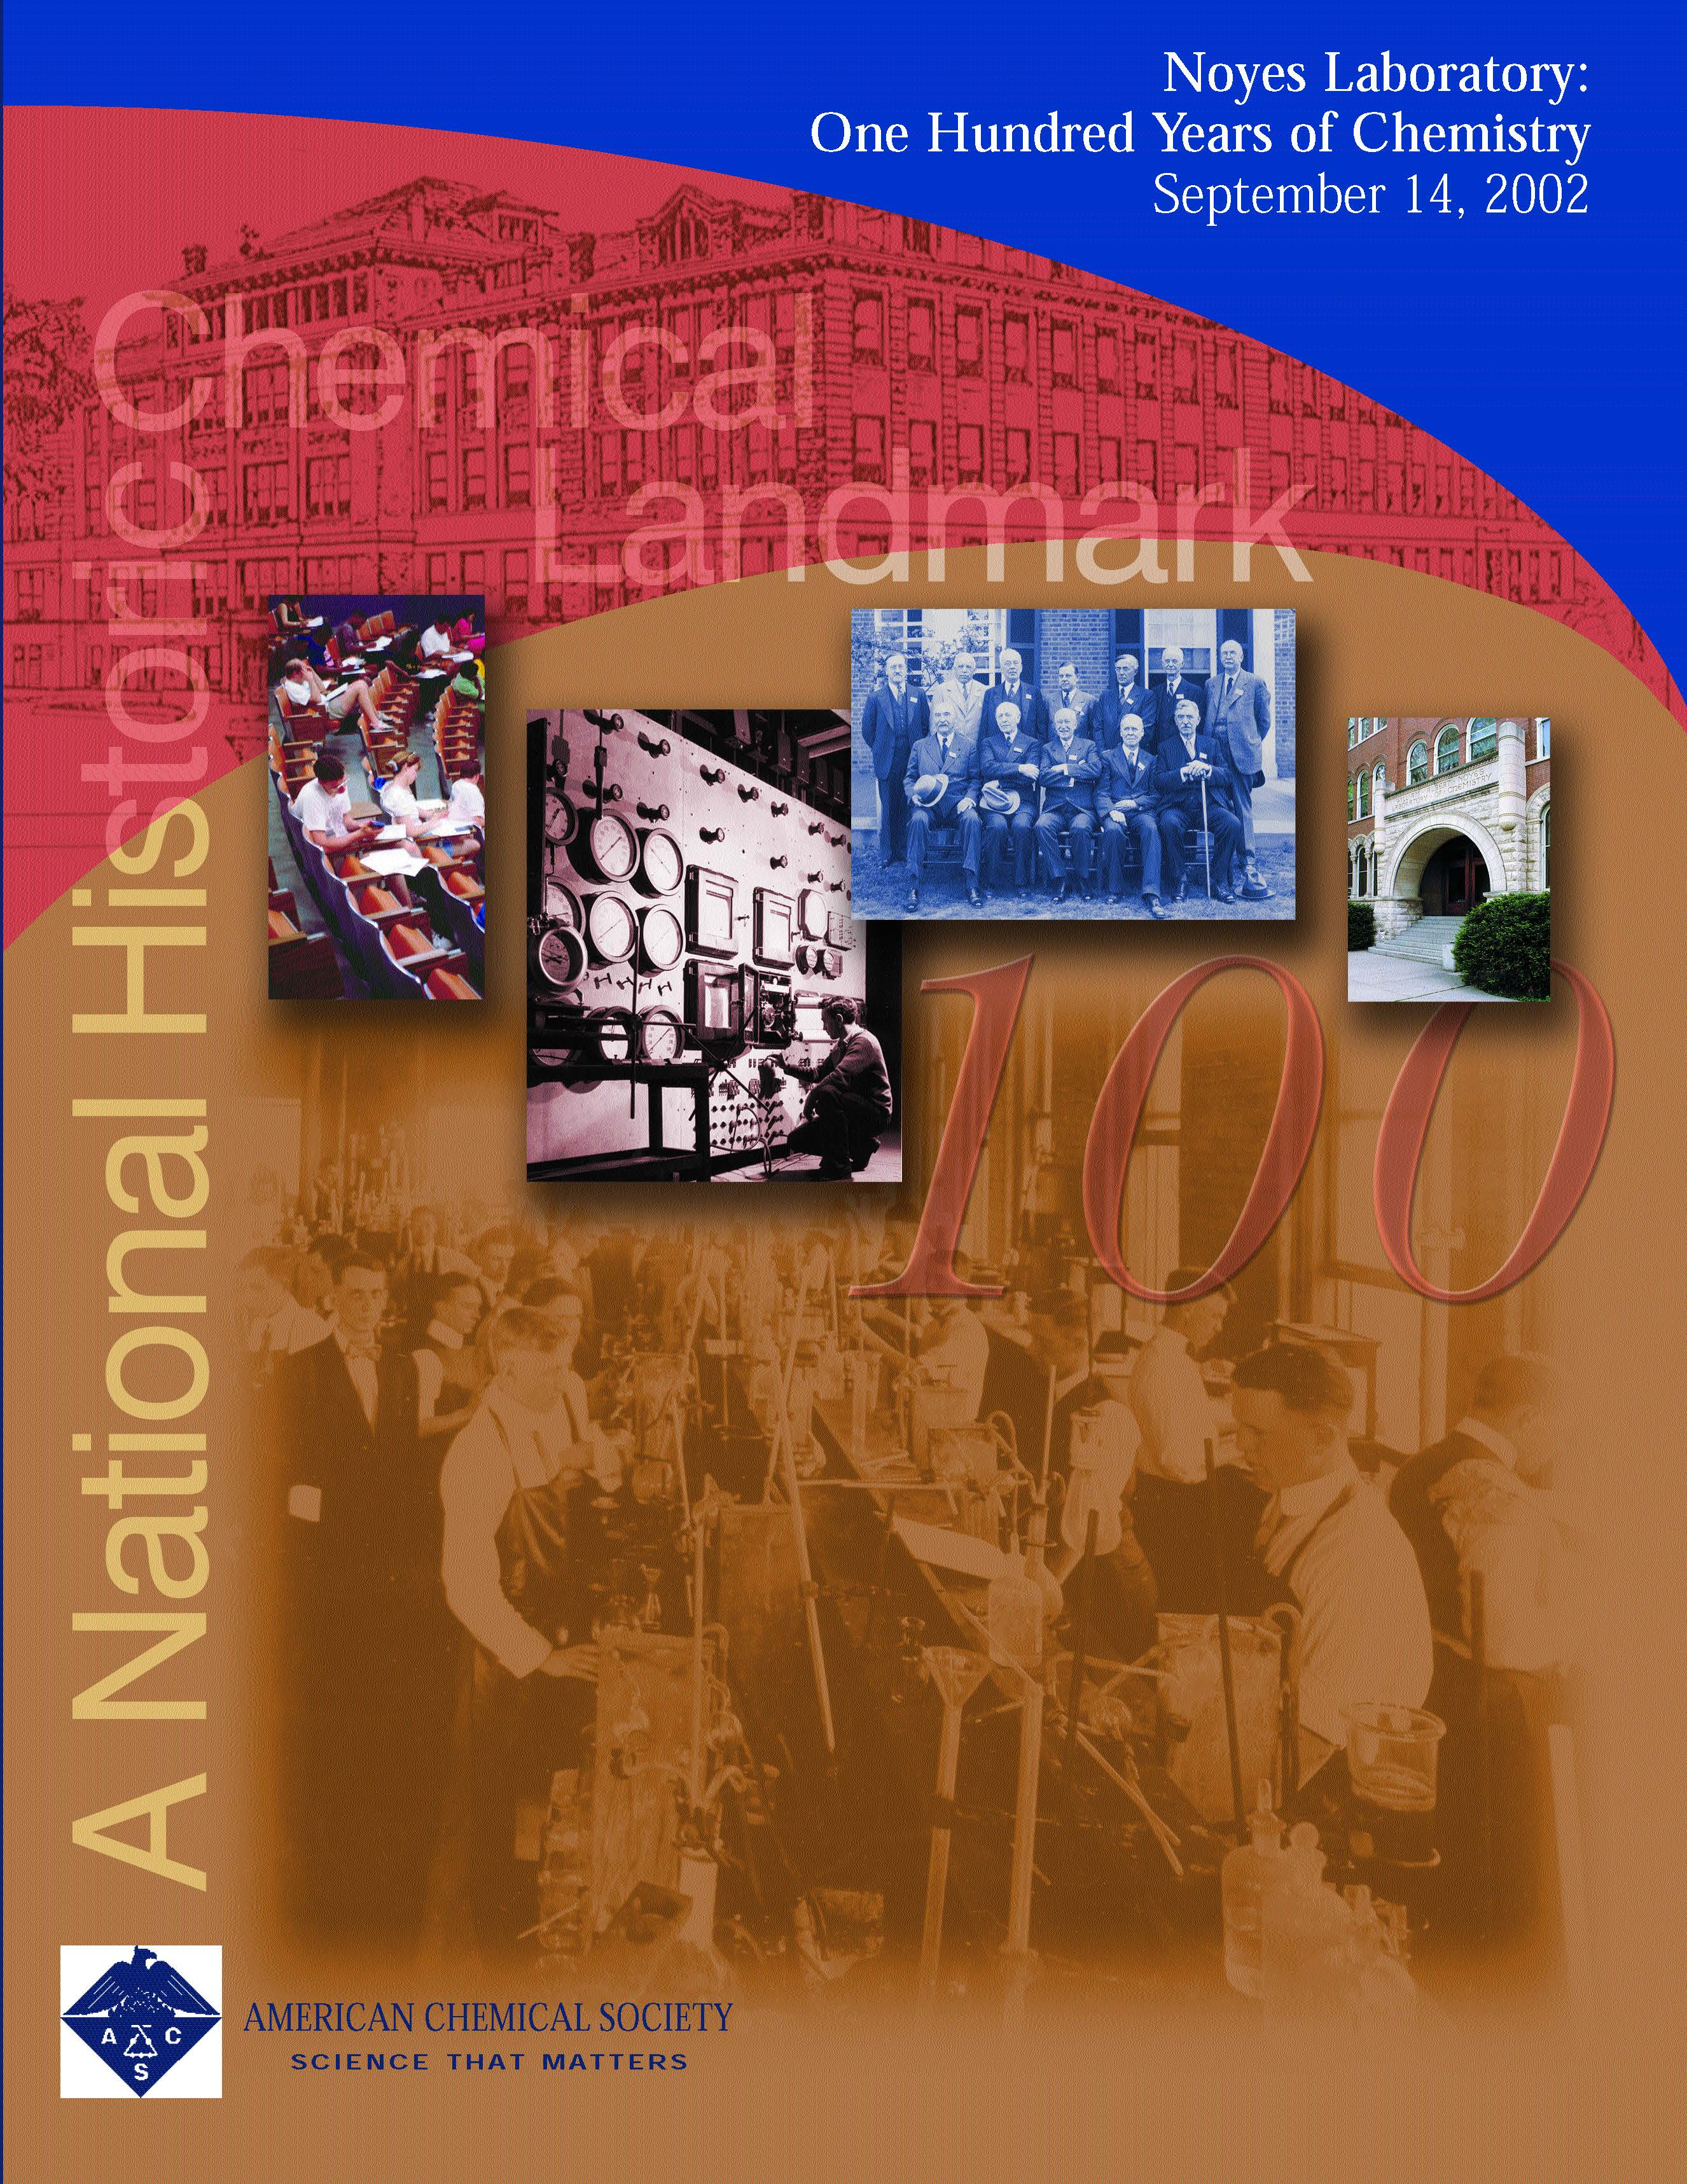 """Noyes Laboratory: One Hundred Years of Chemistry"" commemorative booklet"